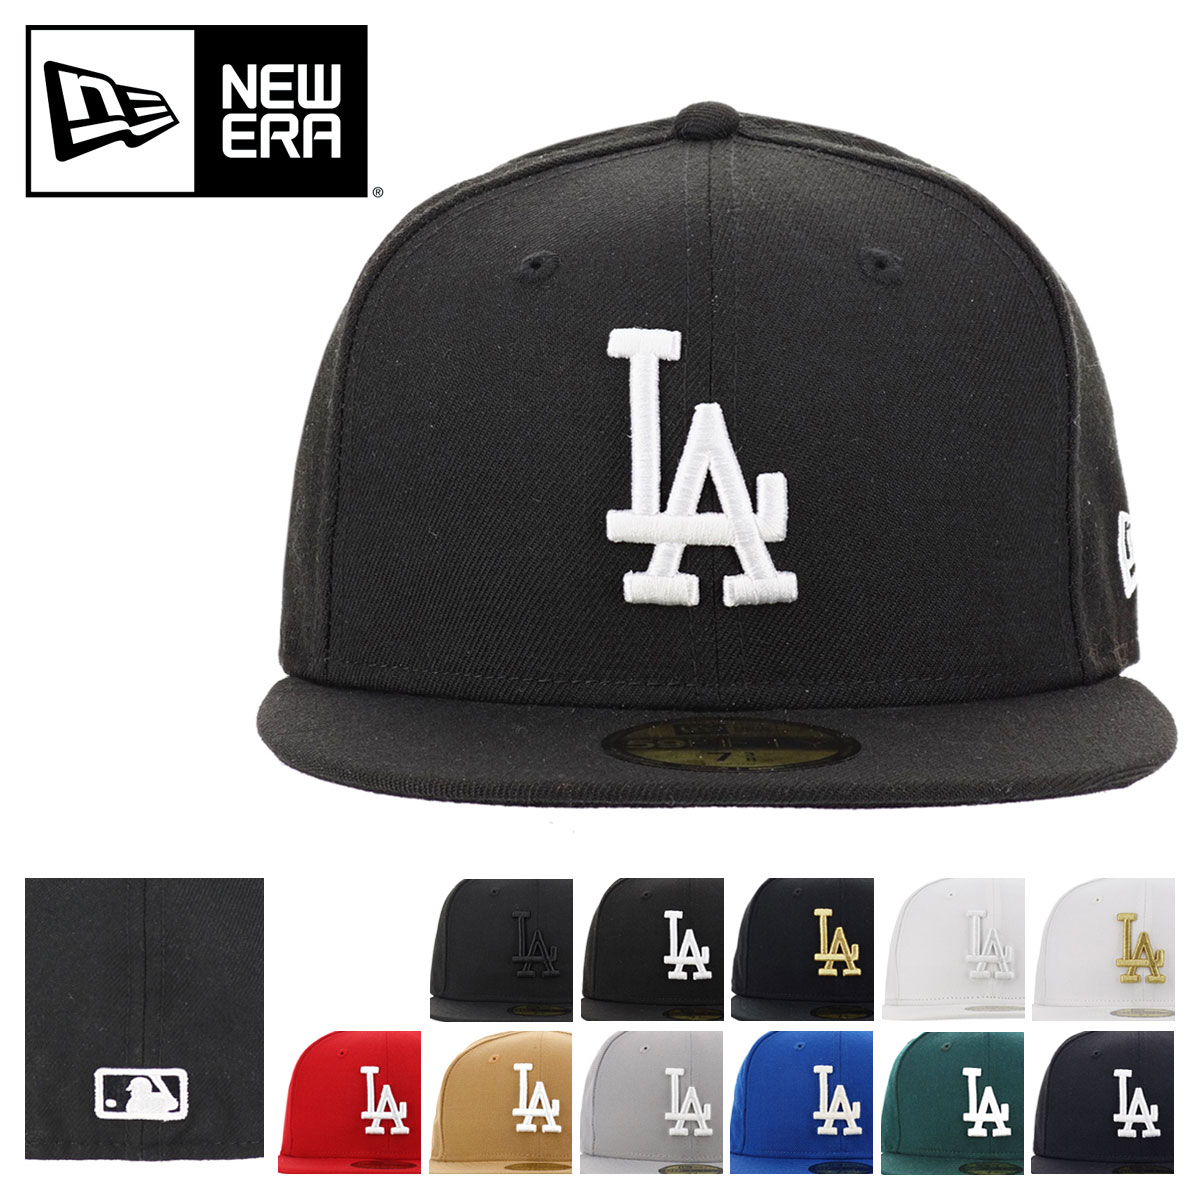 New Era 59Fifty Hat MLB Los Angeles Dodgers Mens Light Gray 5950 Fitted Cap